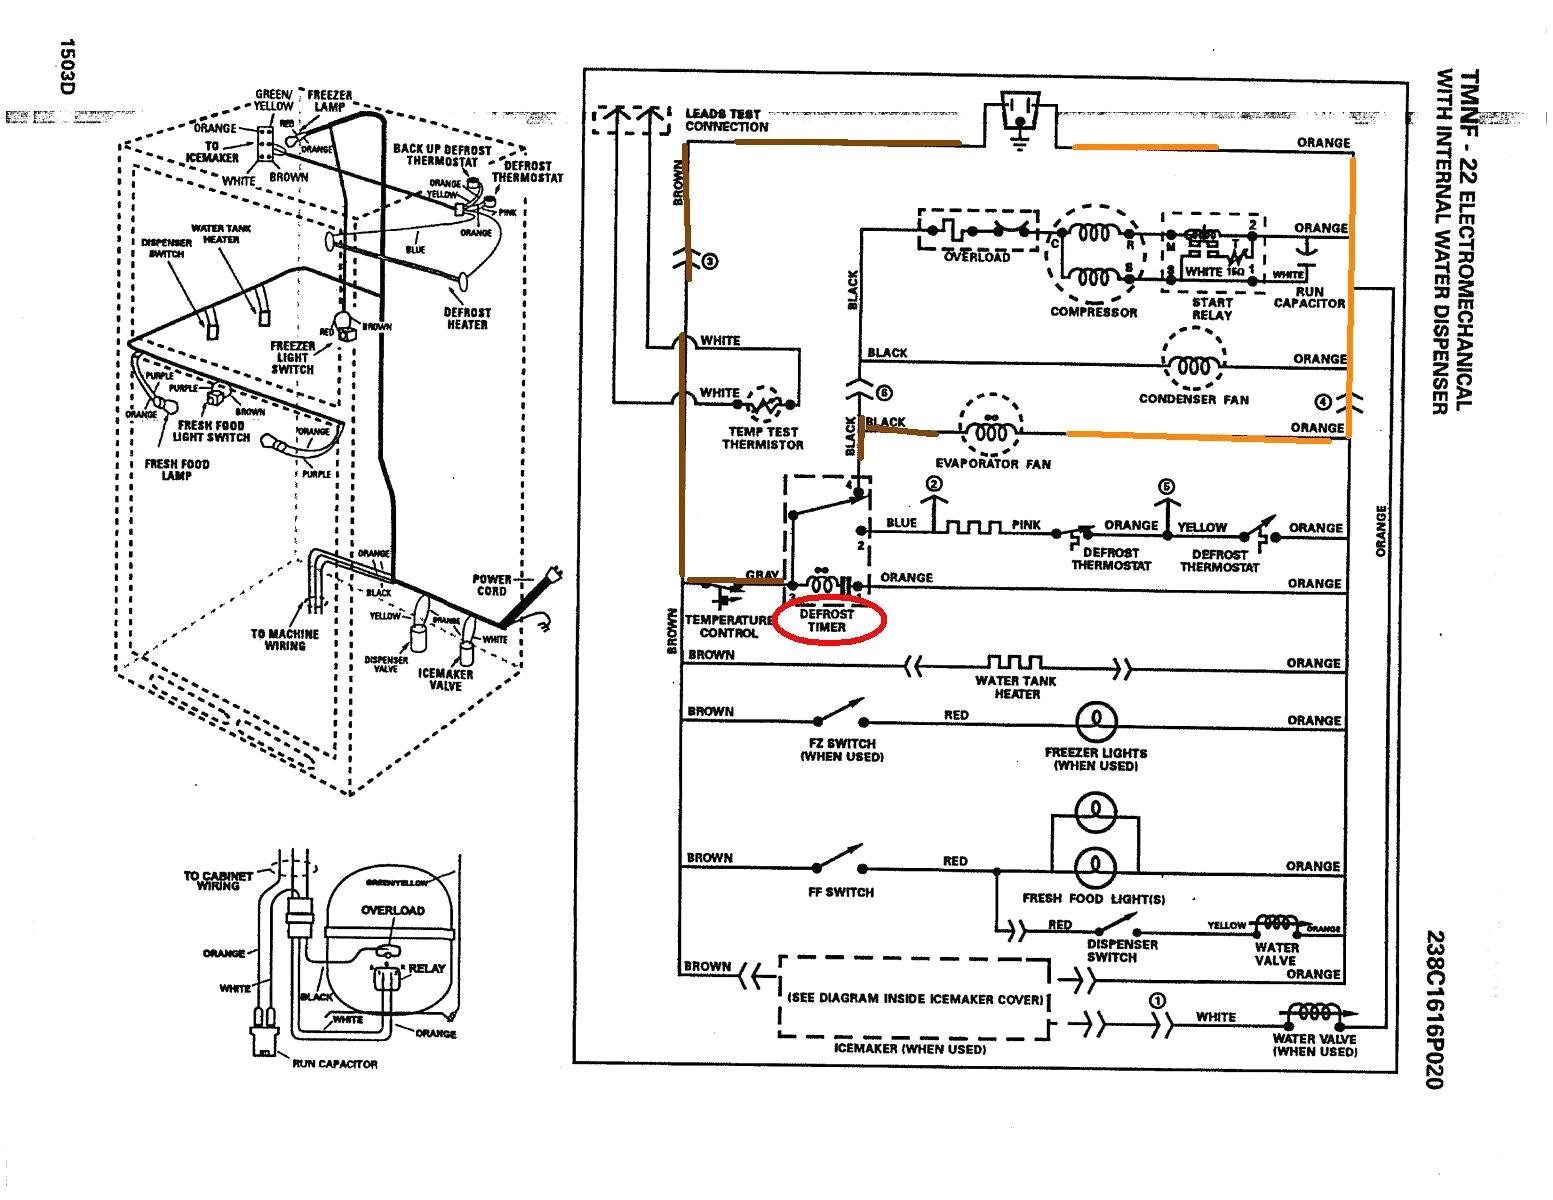 Wiring Diagram For Ge Washer - Wiring Diagram M2 on